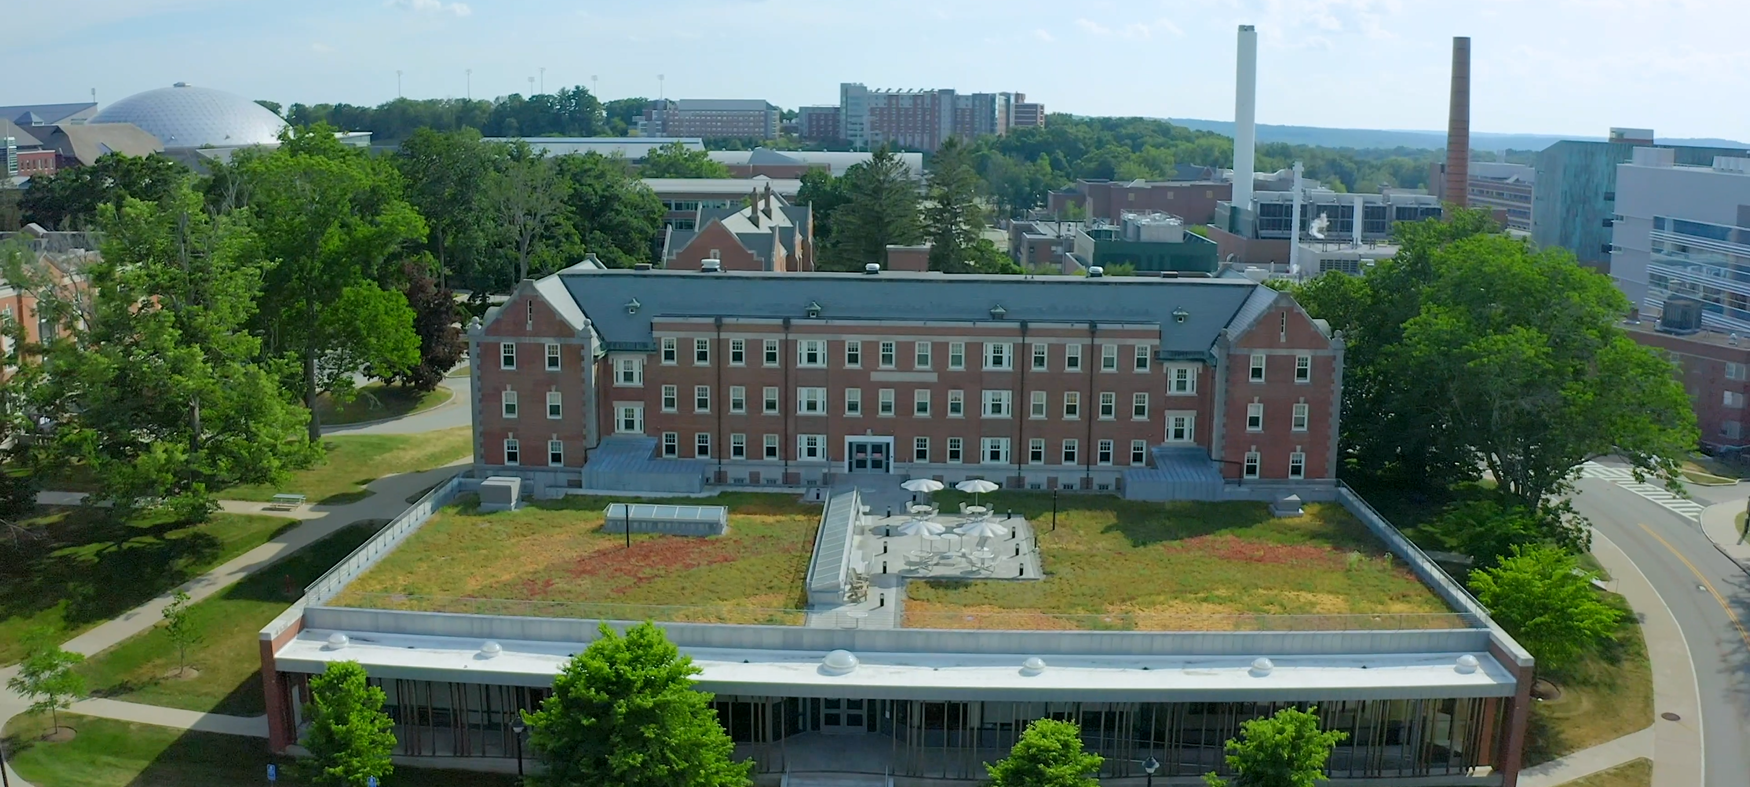 A view of the School of Nursing building, Storrs Hall, from above.